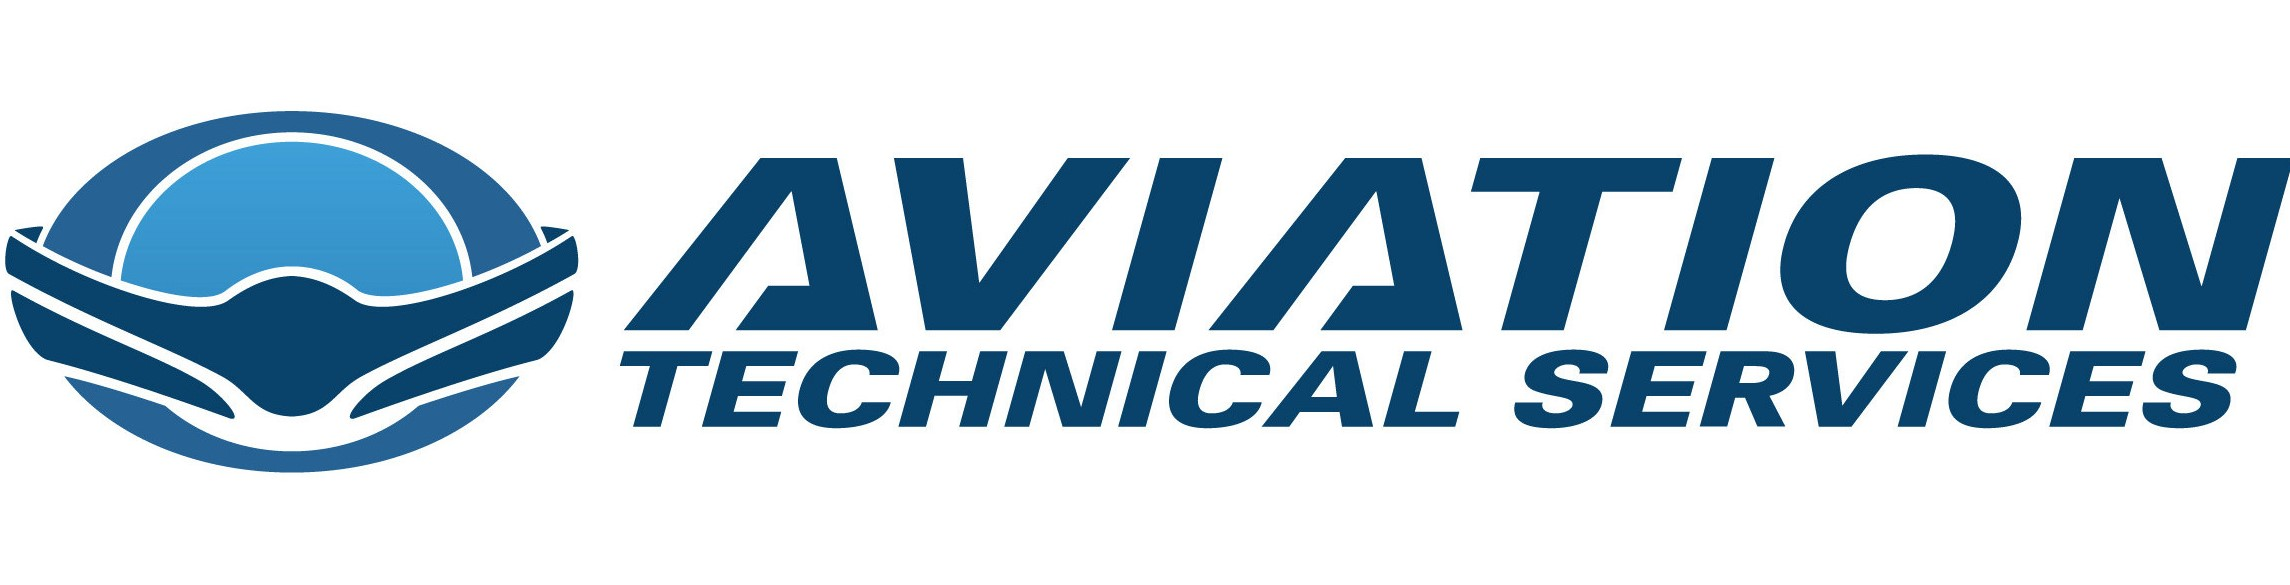 Aviation Technical Services logo